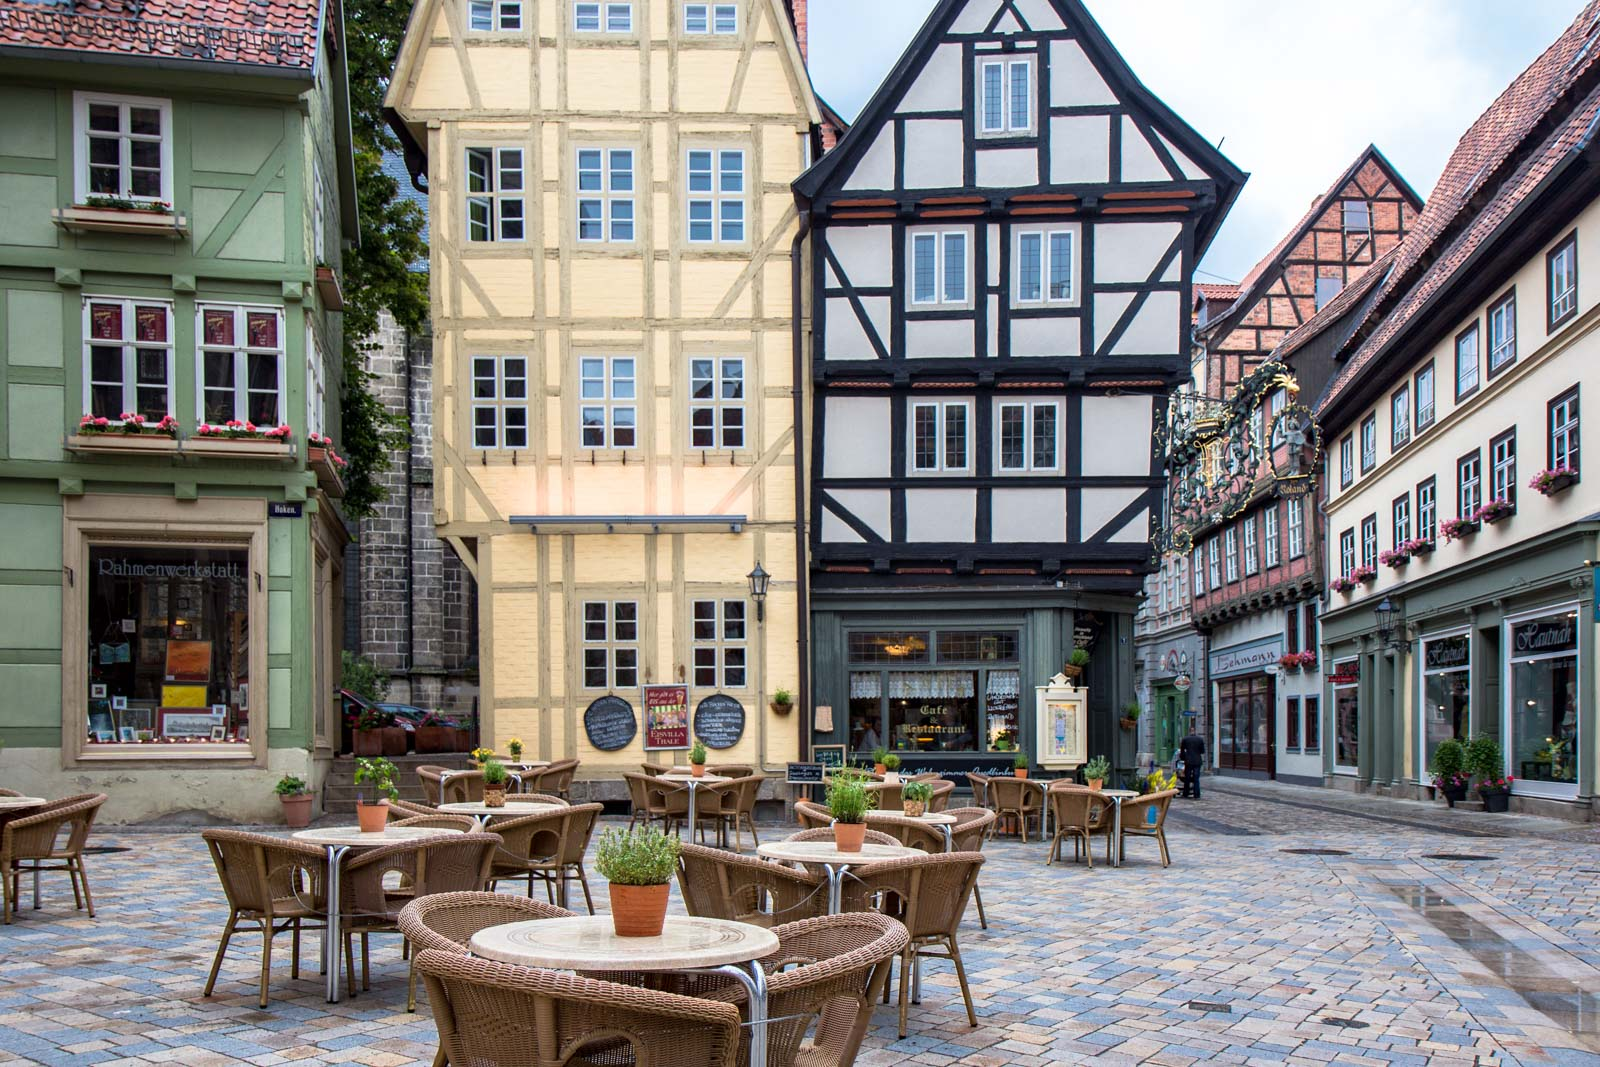 Quedlinburg medieval town, Germany